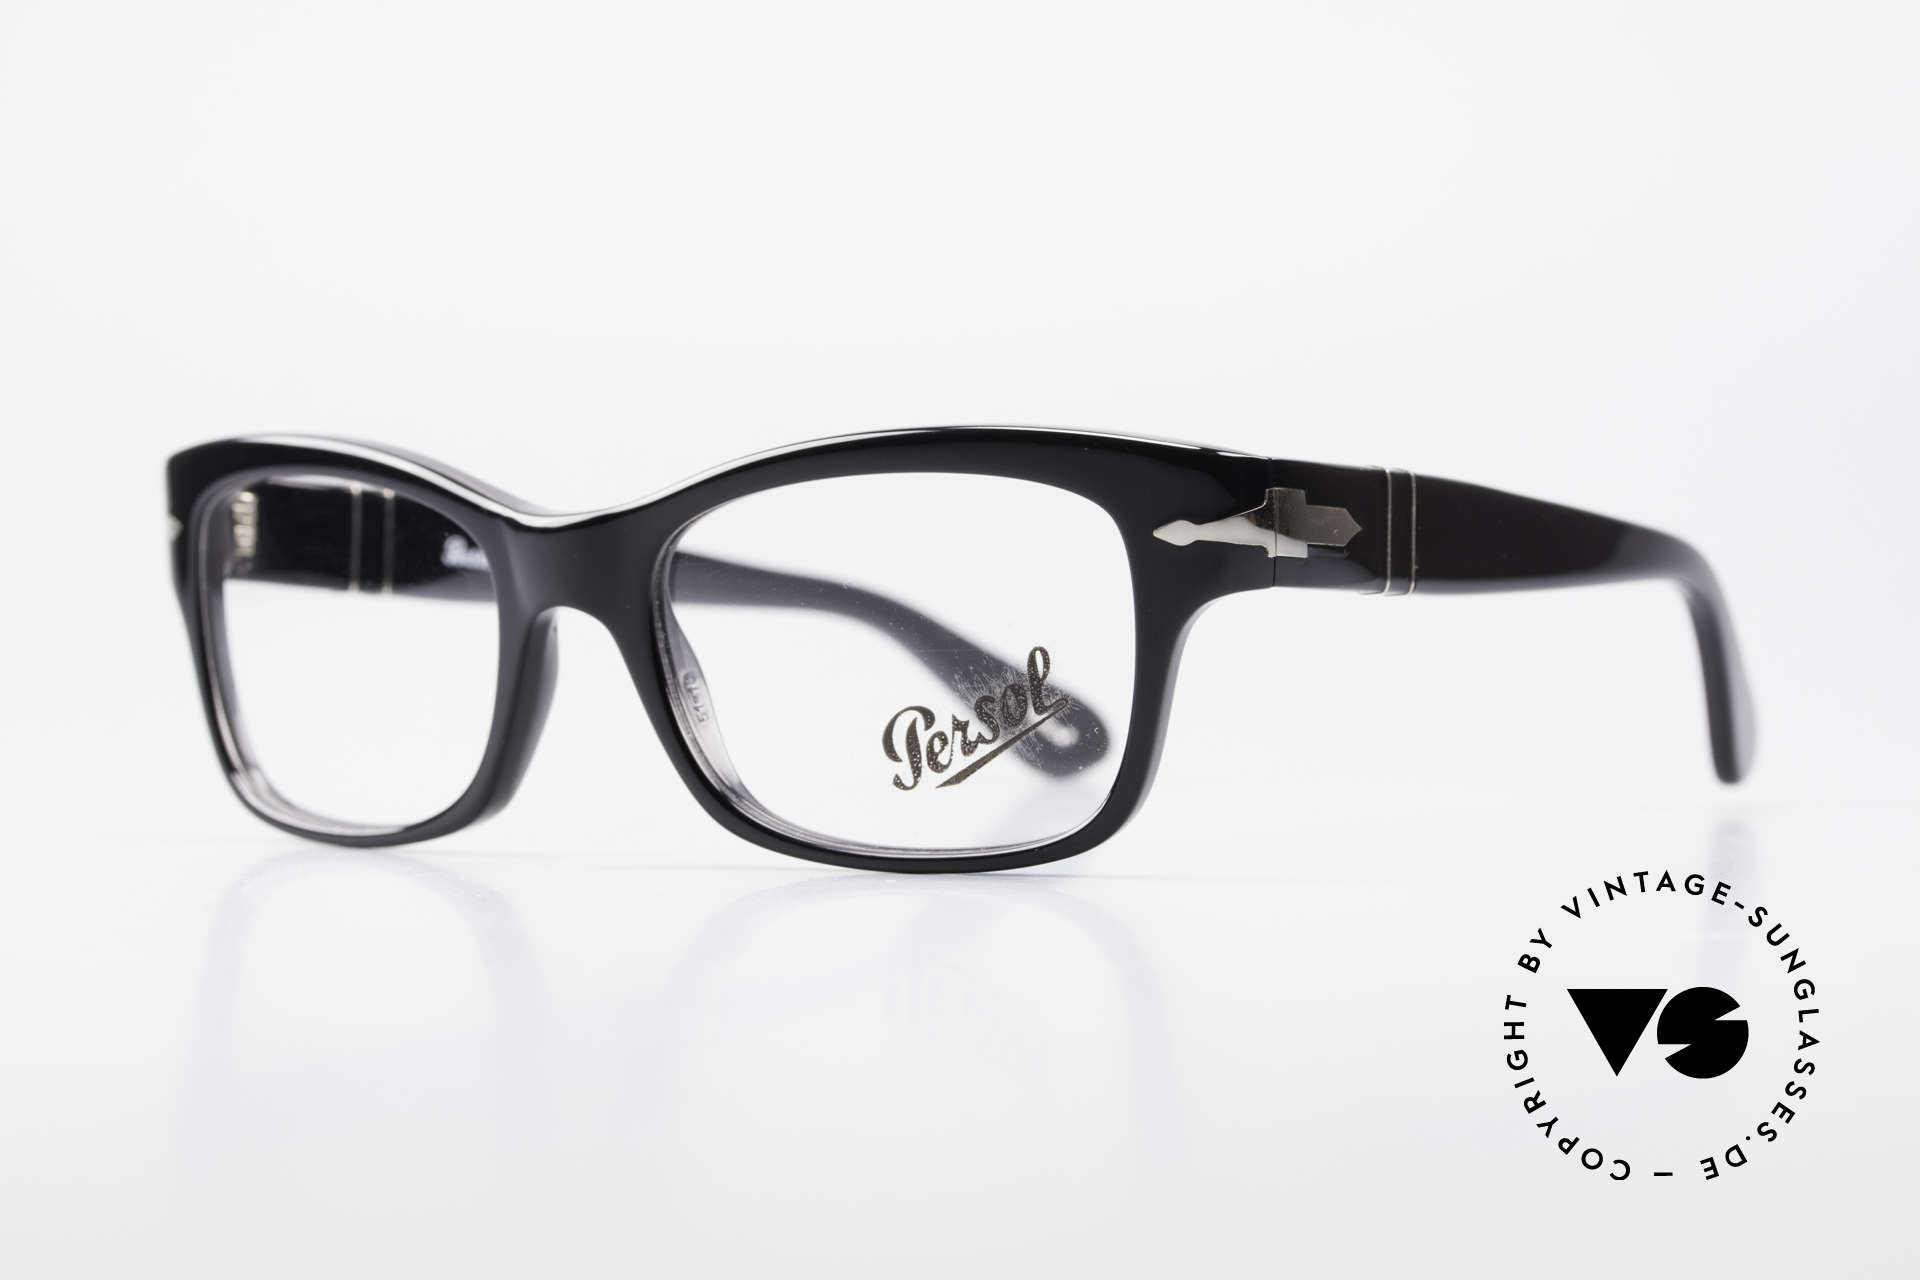 Persol 3054 Vintage Glasses Classic Frame, unworn (like all our classic PERSOL eyeglasses), Made for Men and Women